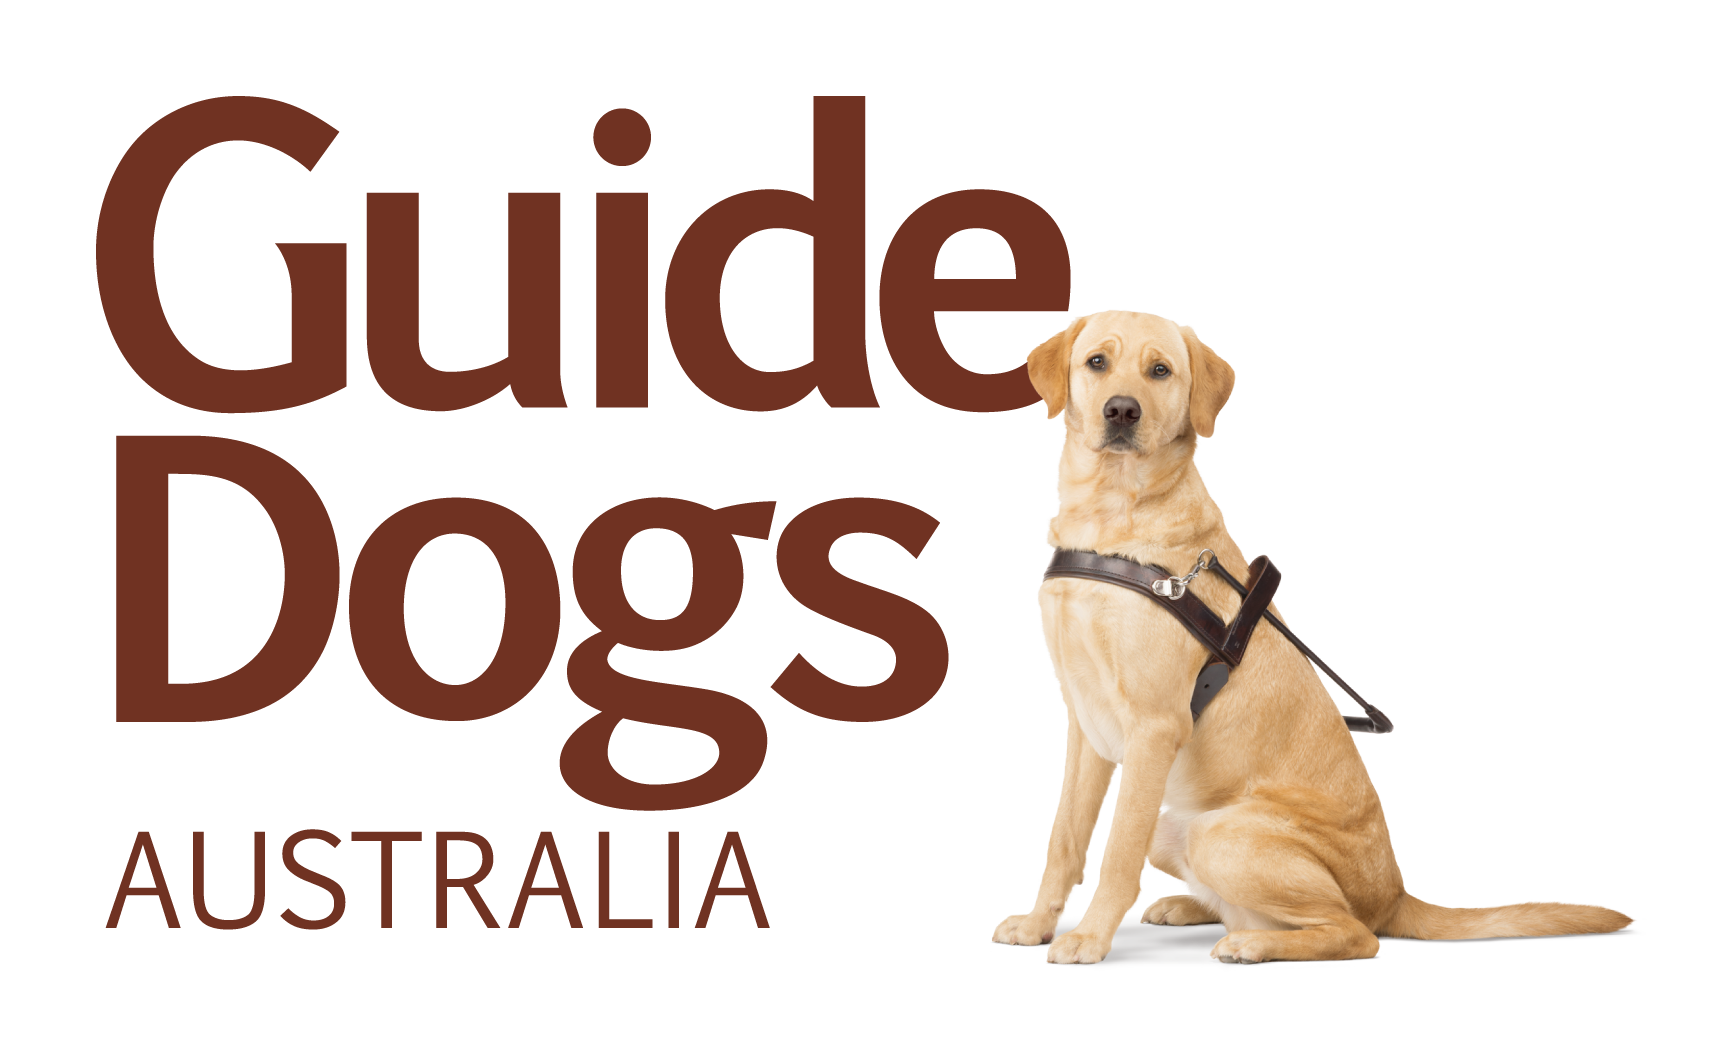 GuideDogs_Australia_Sml_Rel2_RGB.png